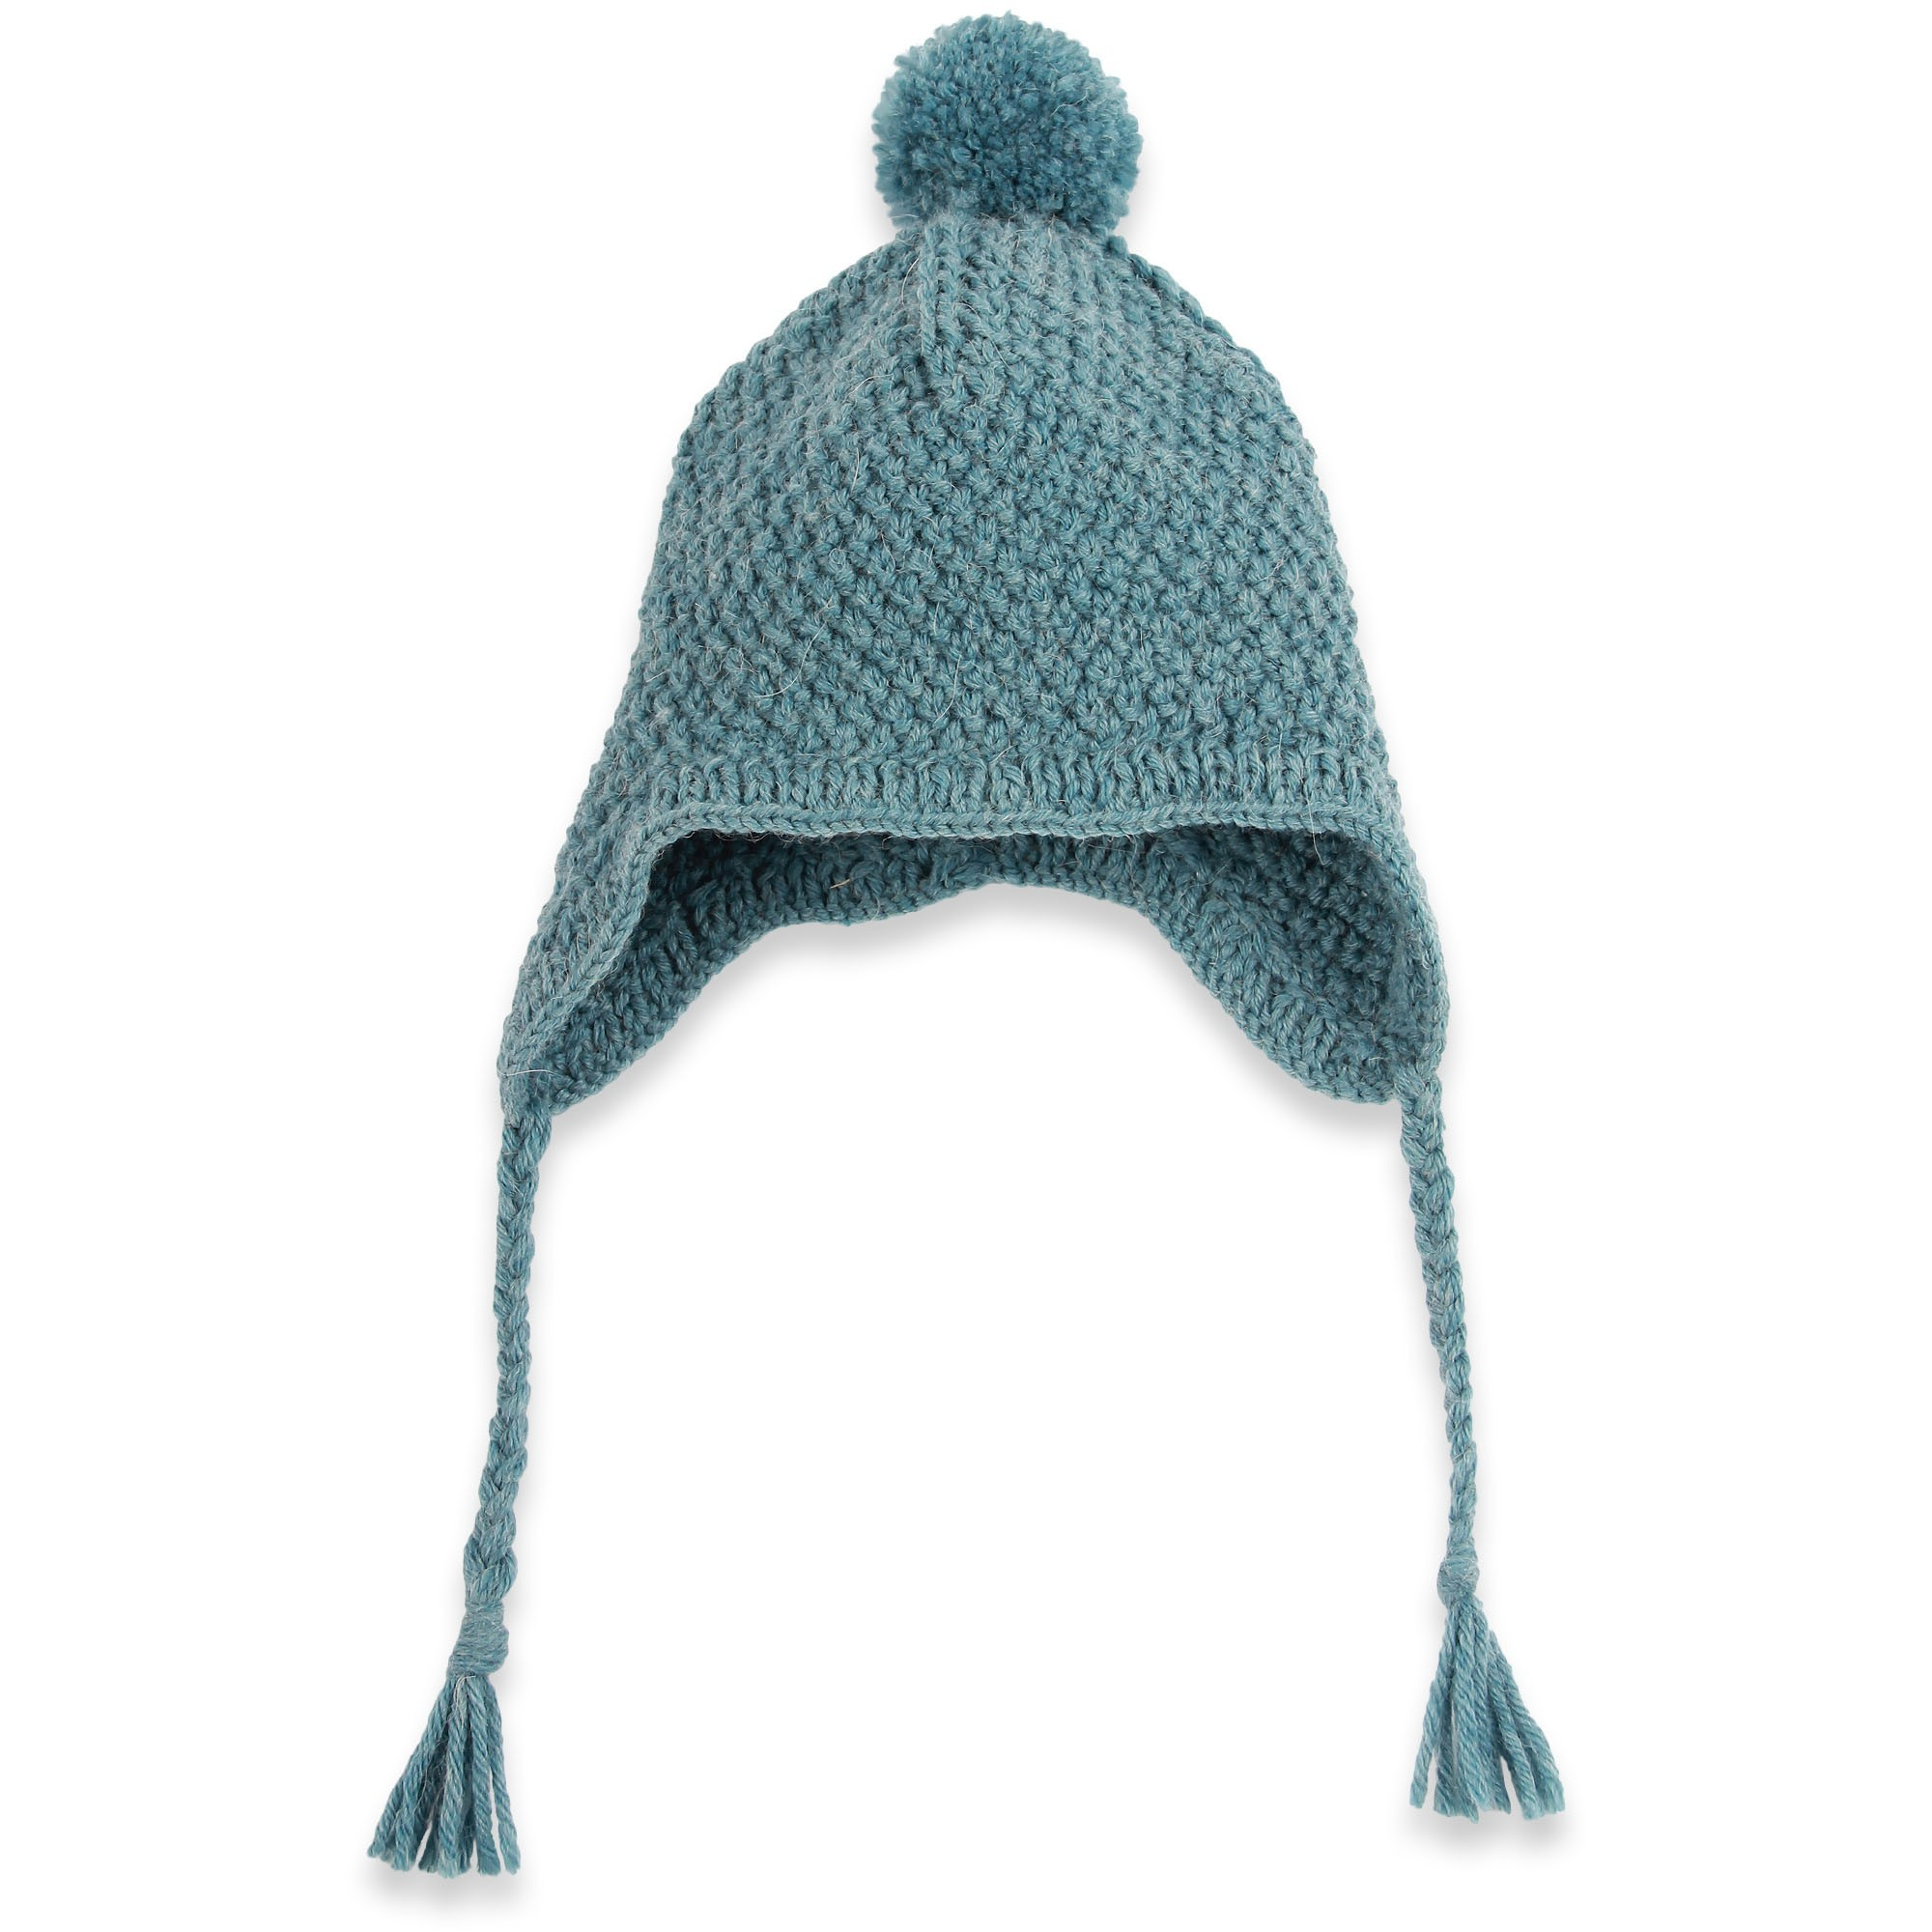 Baby peruvian cap knitted in moss stitch made from wool and alpaca - Petrol blue